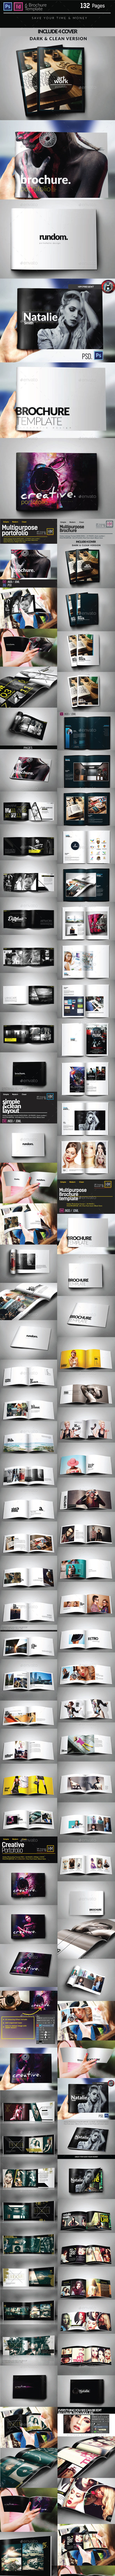 GraphicRiver 6 Bundle Brochure Template 11192625